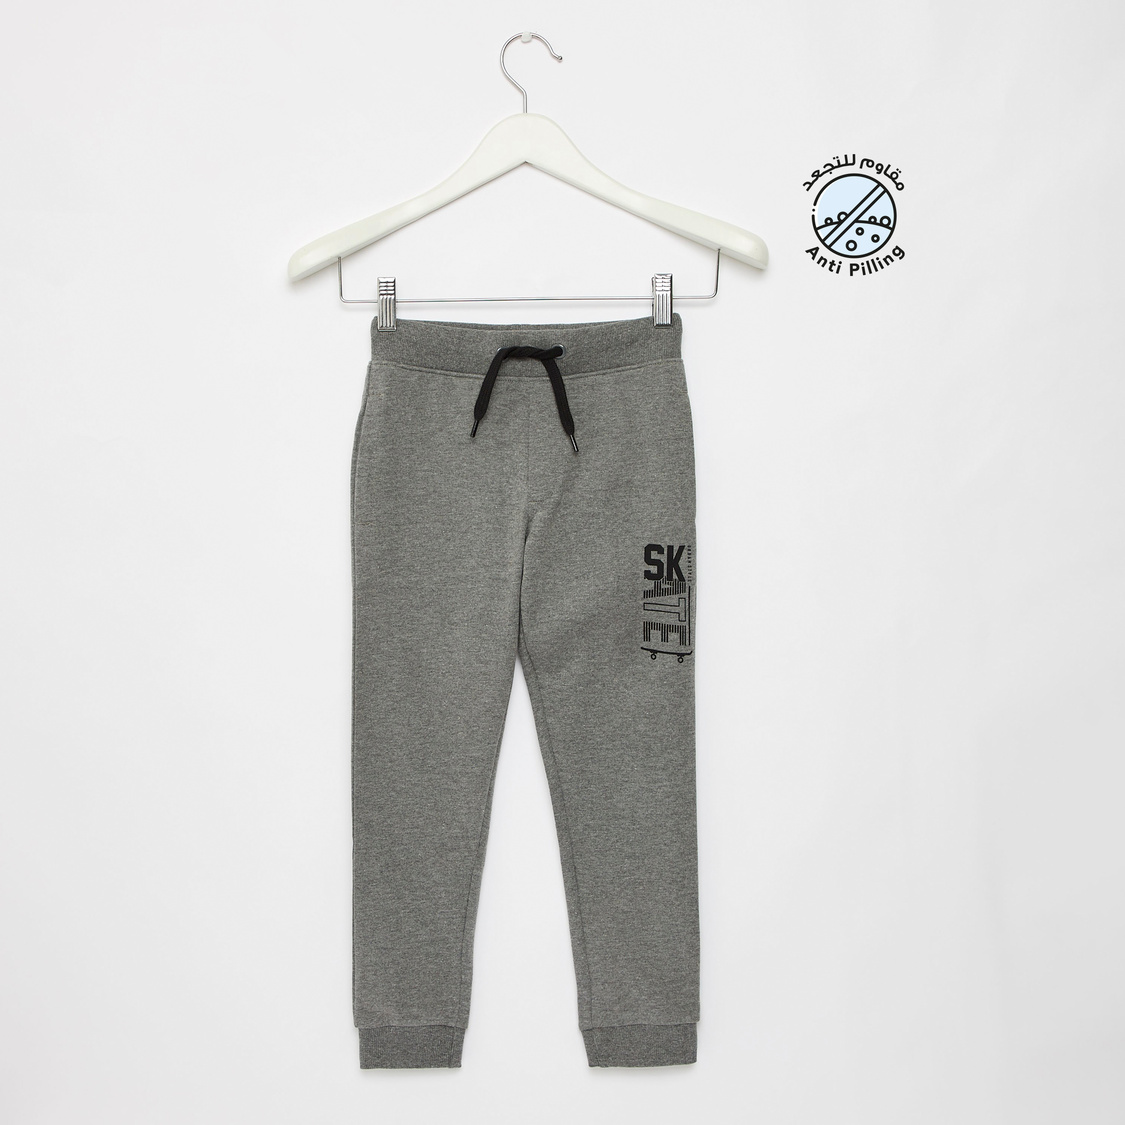 Full Length Graphic Print Jog Pants with Elasticised Waistband